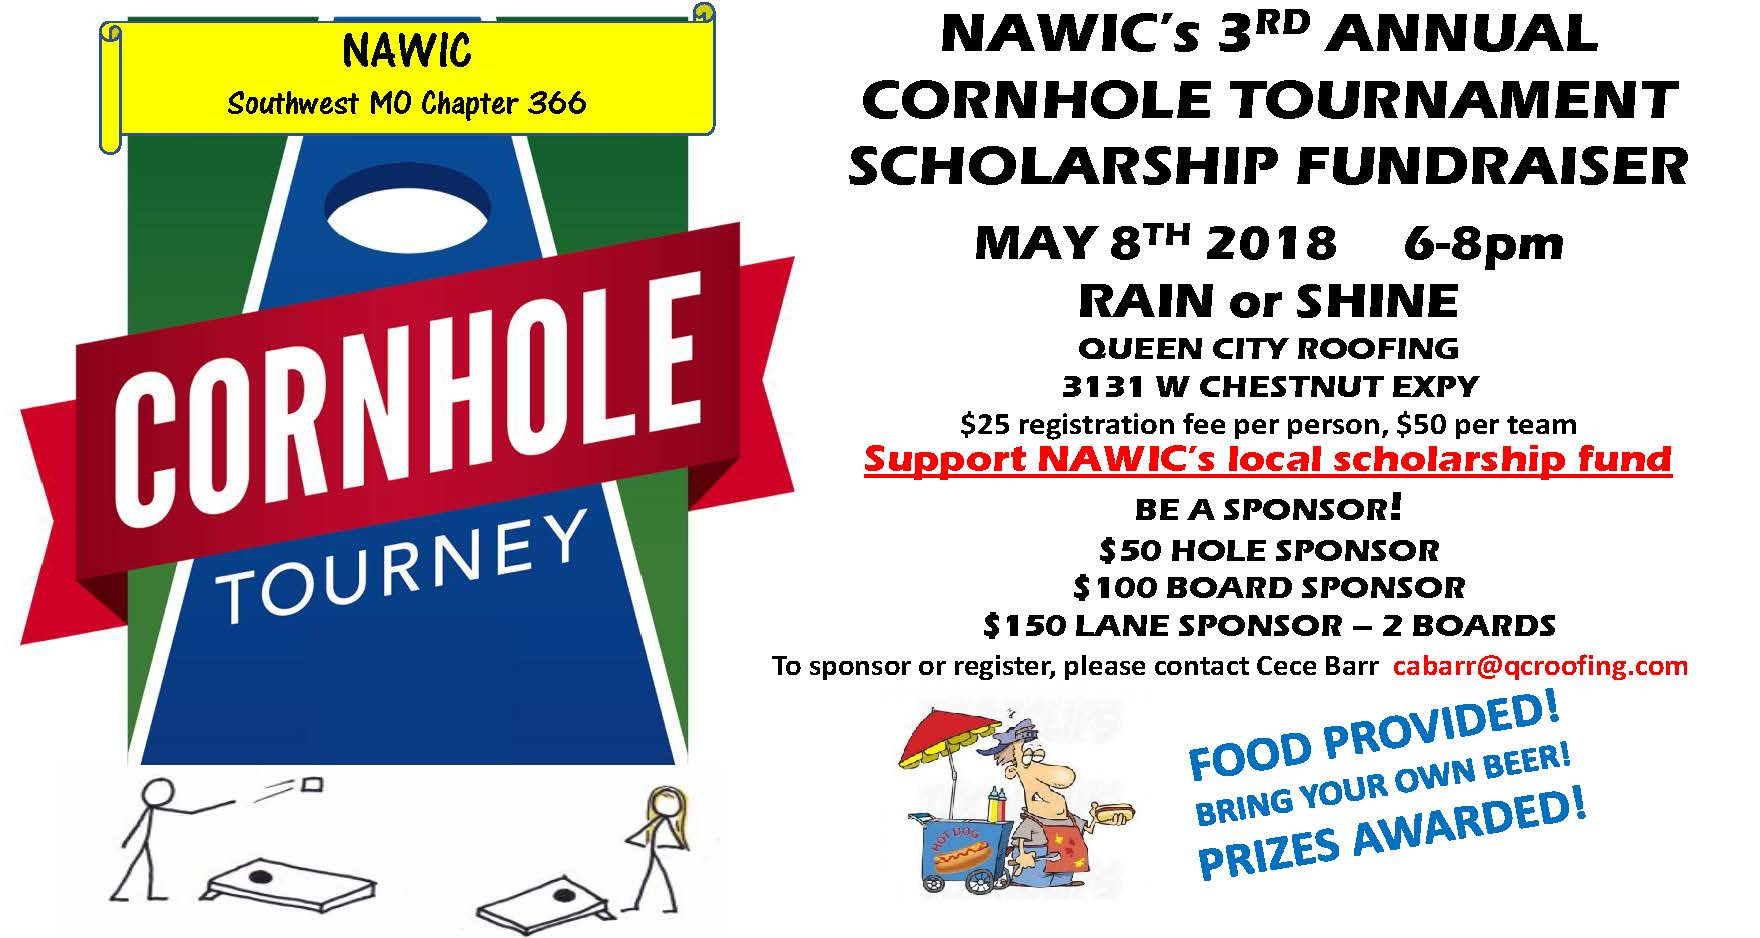 nawic southwest missouri chapter cornhole tournament 2018